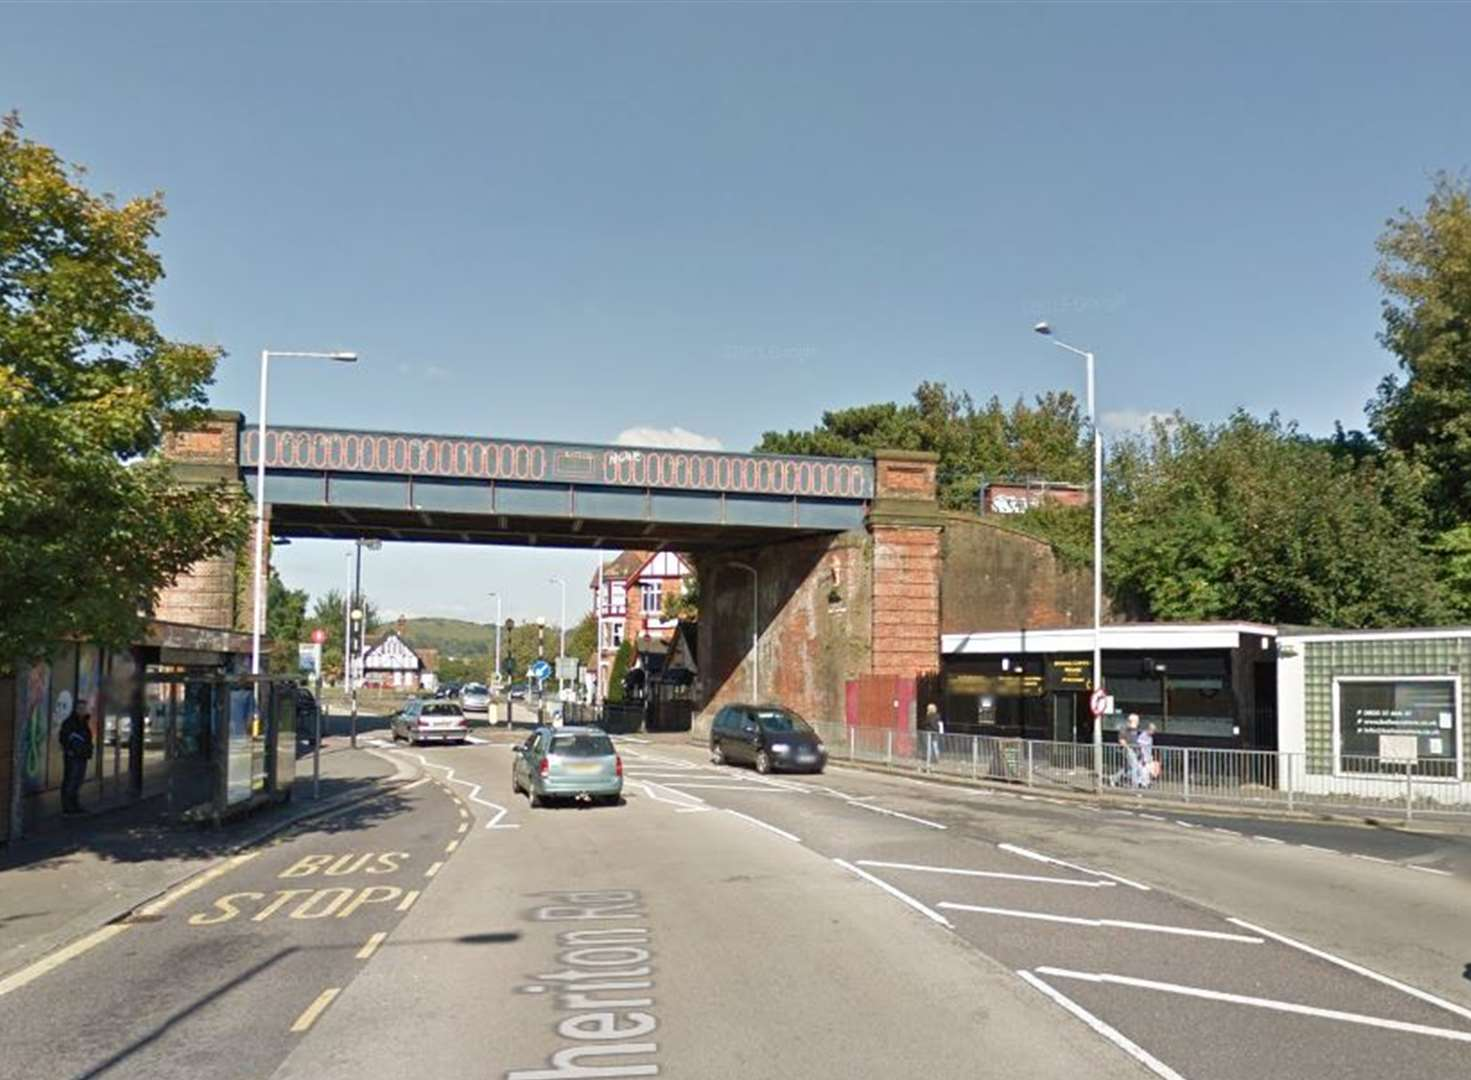 Man attacked by gang outside station